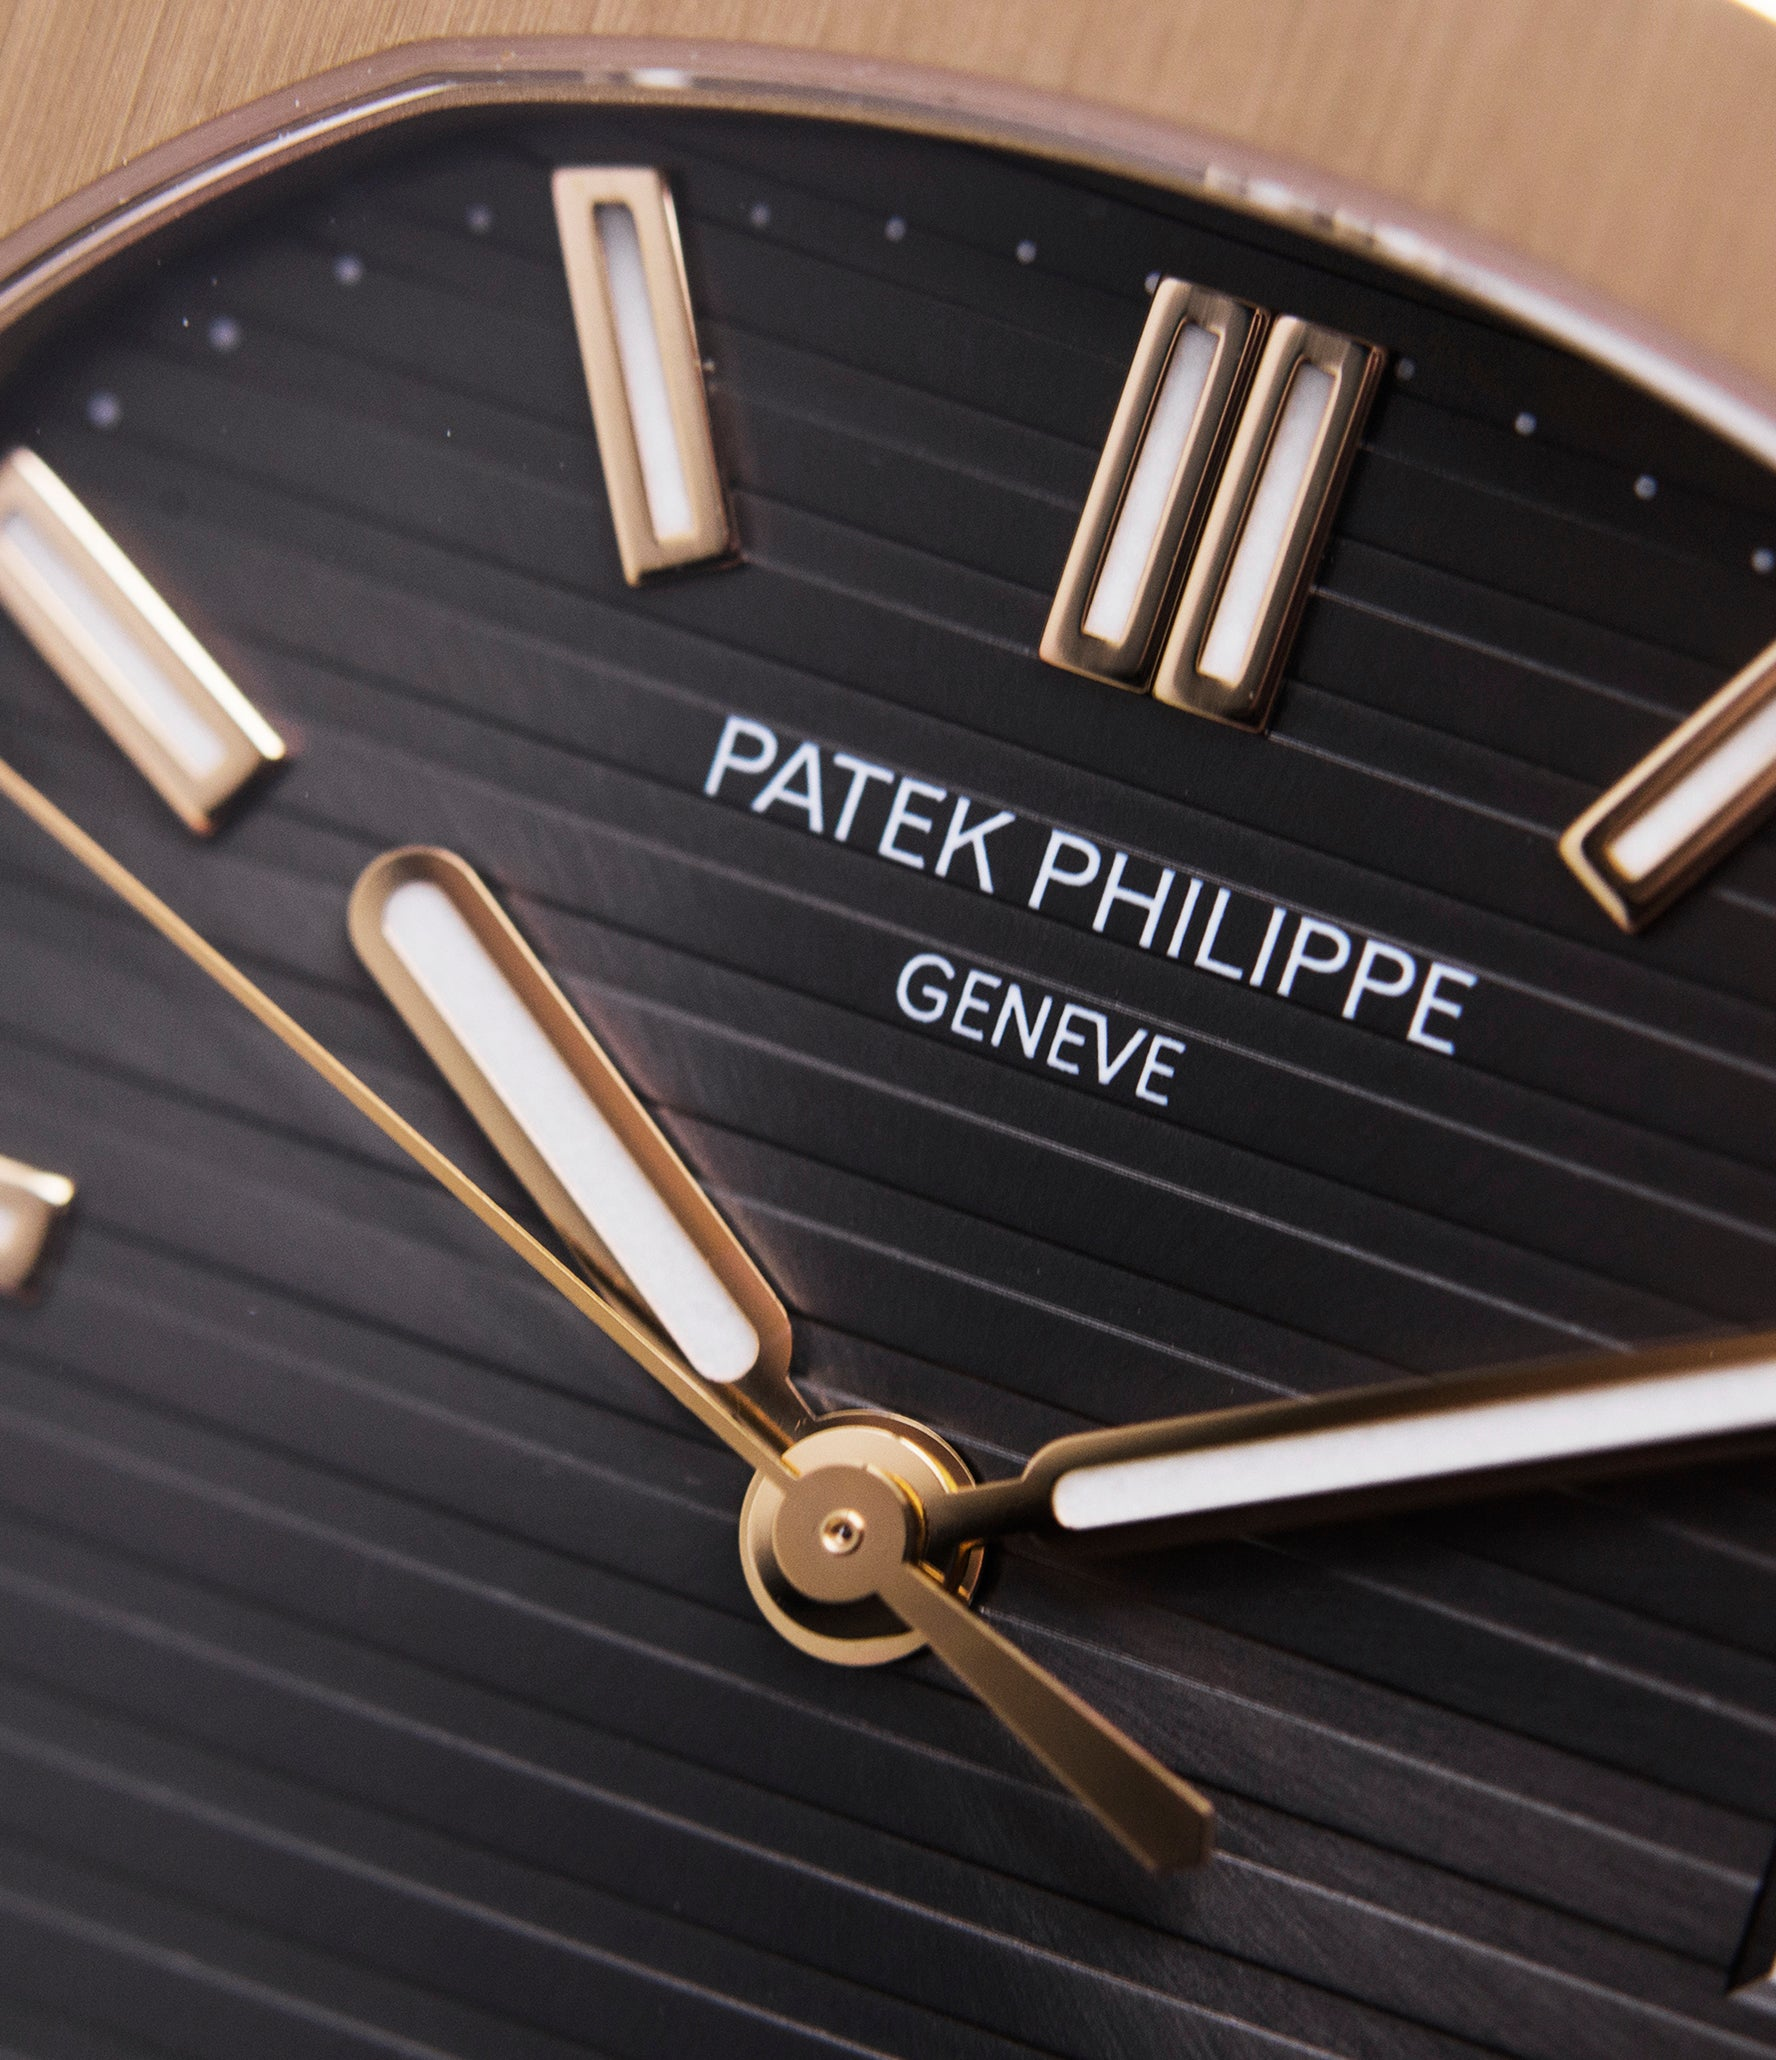 Patek Philippe brown dial Nautilus 5711 rose gold dress watch for sale online at A Collected Man London UK specialist of rare watches